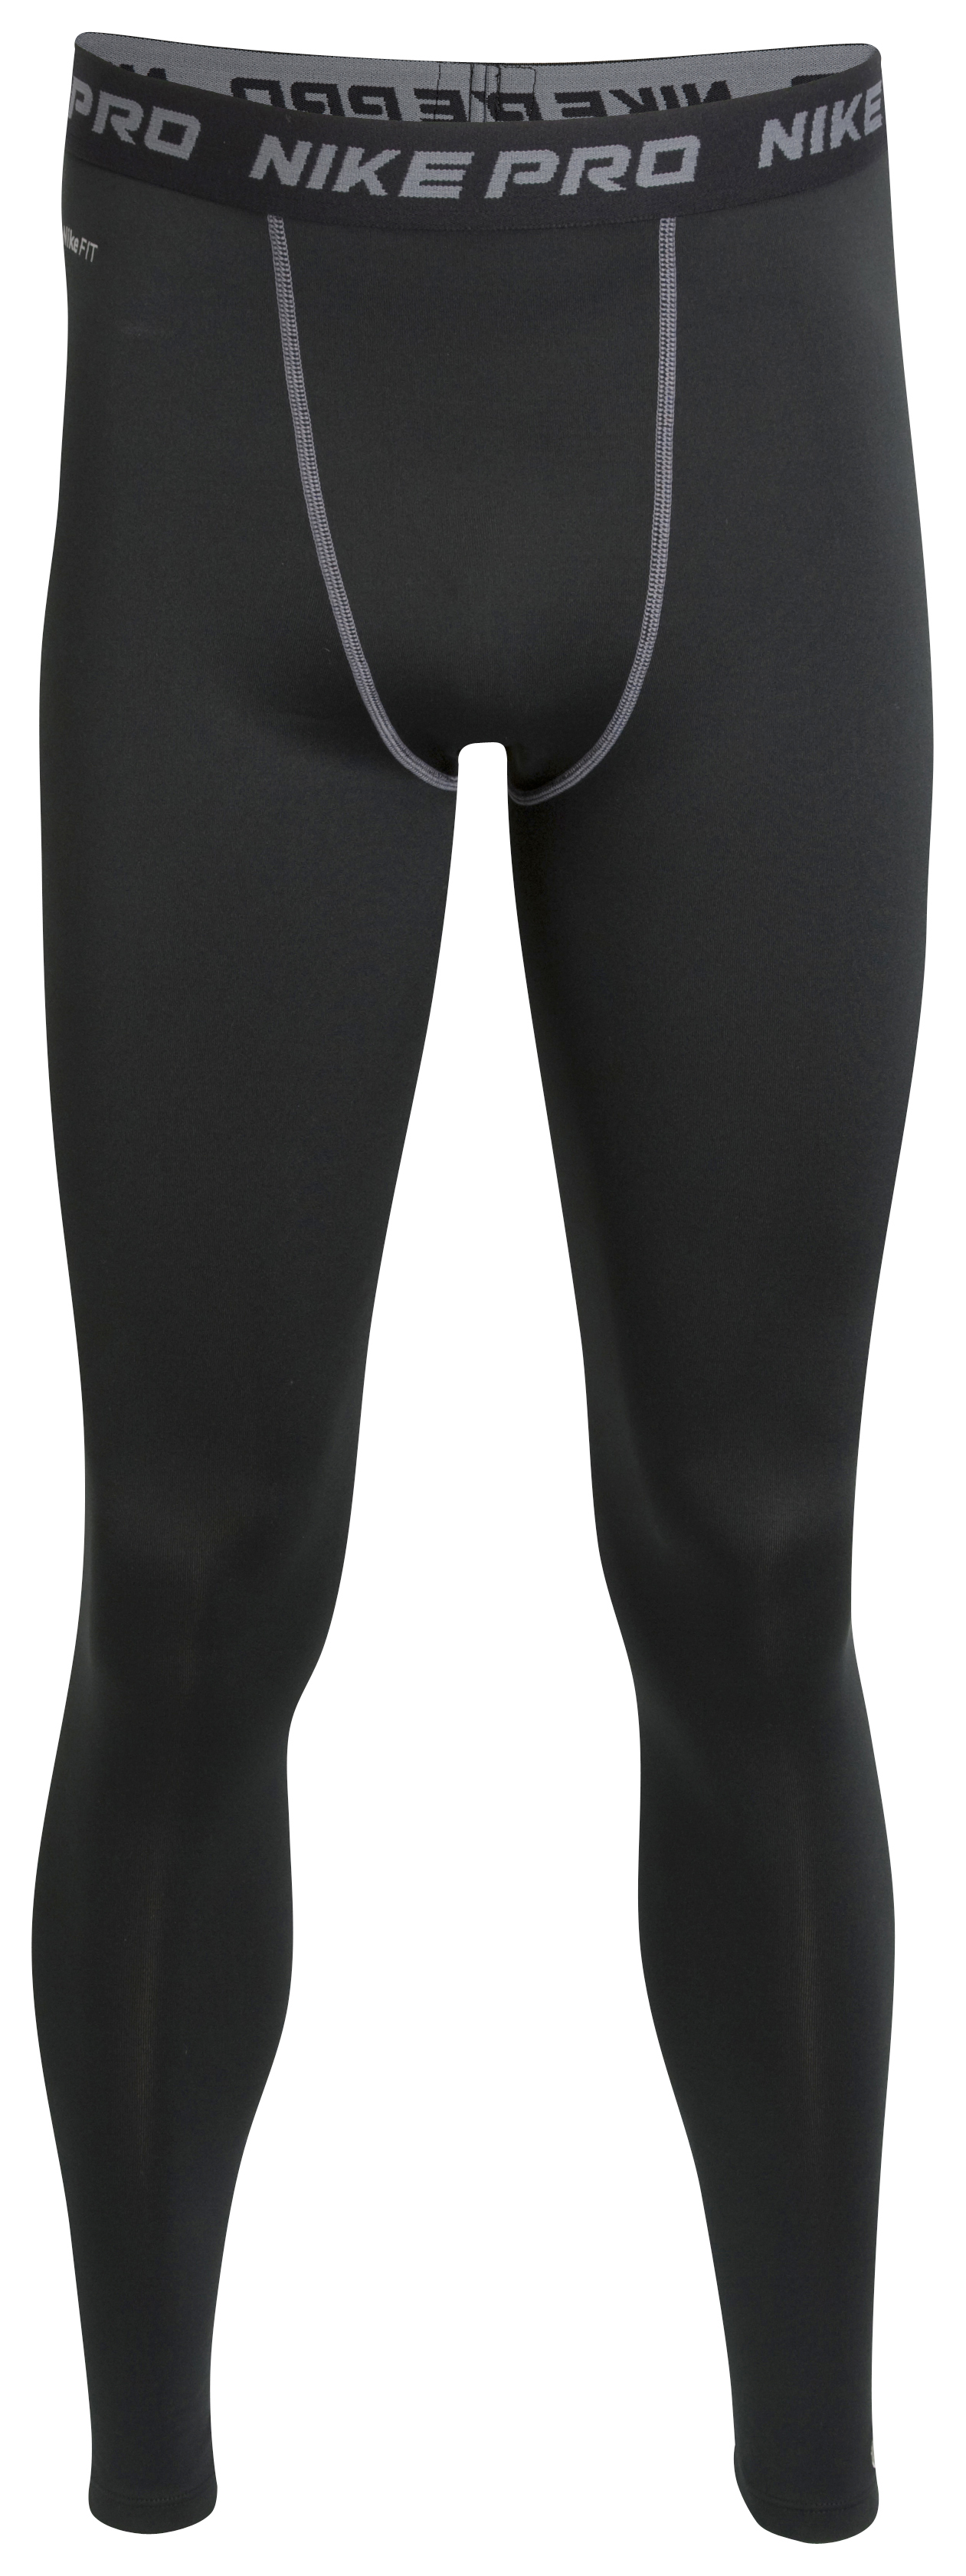 Nike Pro Core Cold Weather Tights - Black/Grey